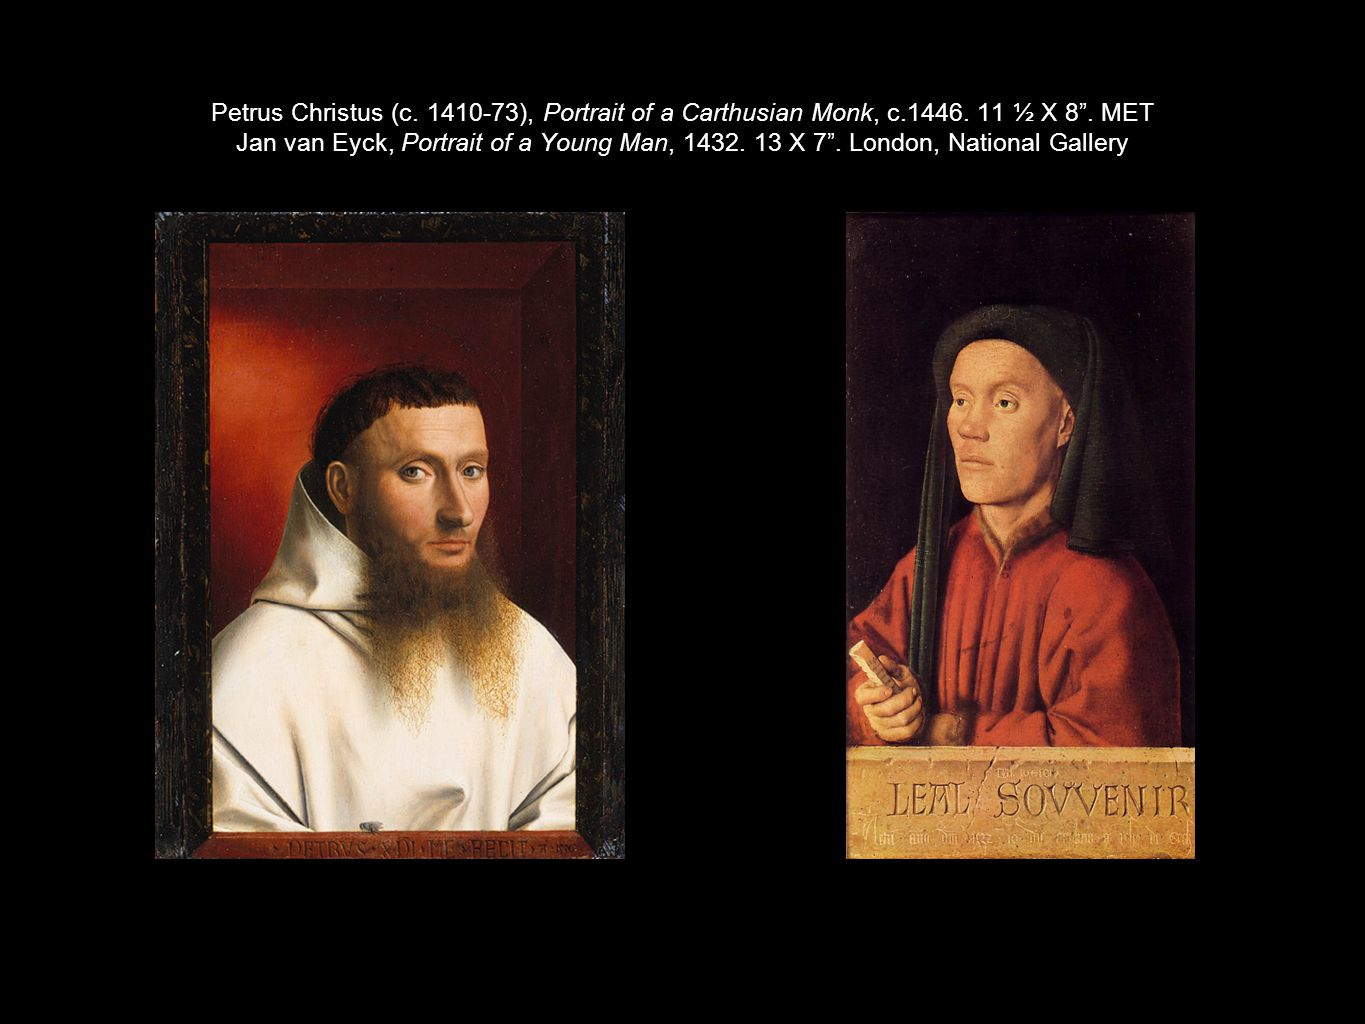 Petrus Christus (c. 1410-73), Portrait of a Carthusian Monk, c. 1446